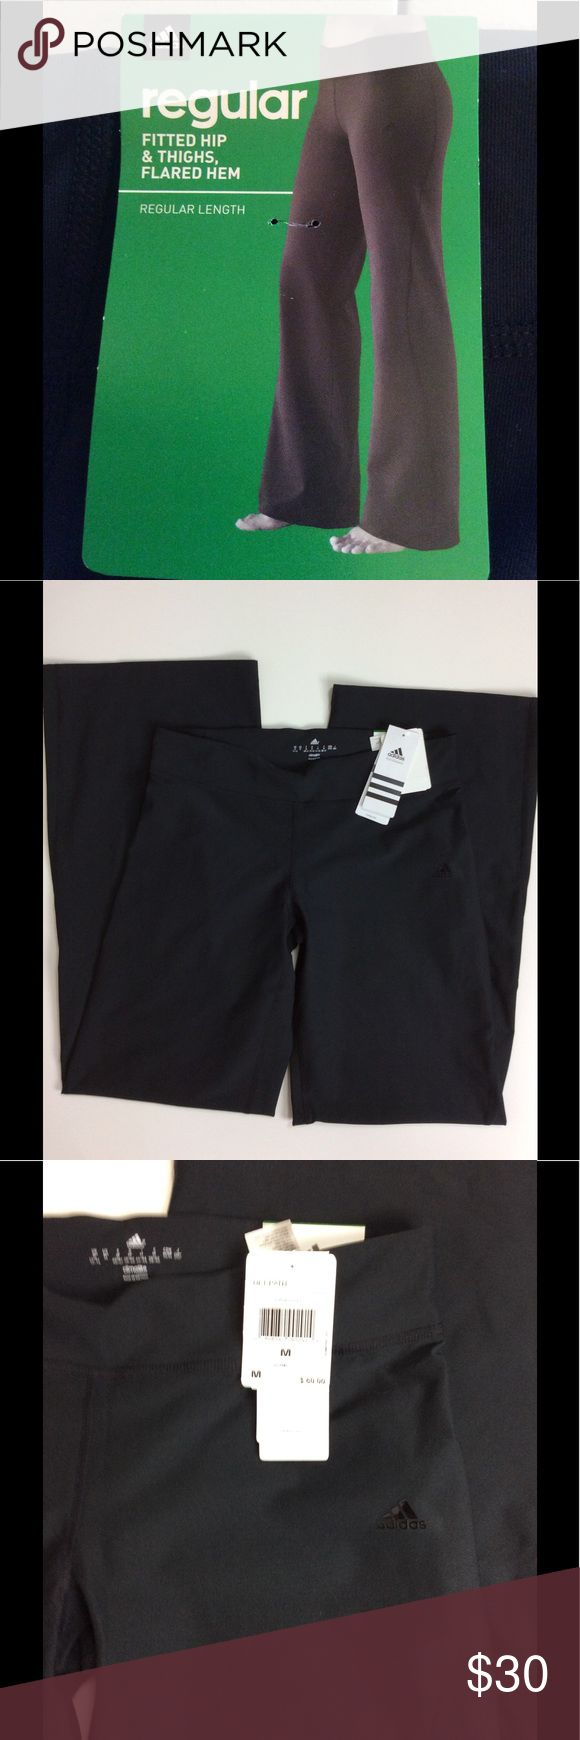 "Adidas Performance Ultimate Regular Pant, NWT Women's Adidas Performance Ultimate Regular Pant, NWT. Size medium; 15"" width, 7.5"" rise, 32"" inseam. 93% polyester, 7% spandex. Fitted hip and thighs, flared hem. Black Adidas symbol on front left hip/thigh. Waistband pocket. adidas Pants Track Pants & Joggers"